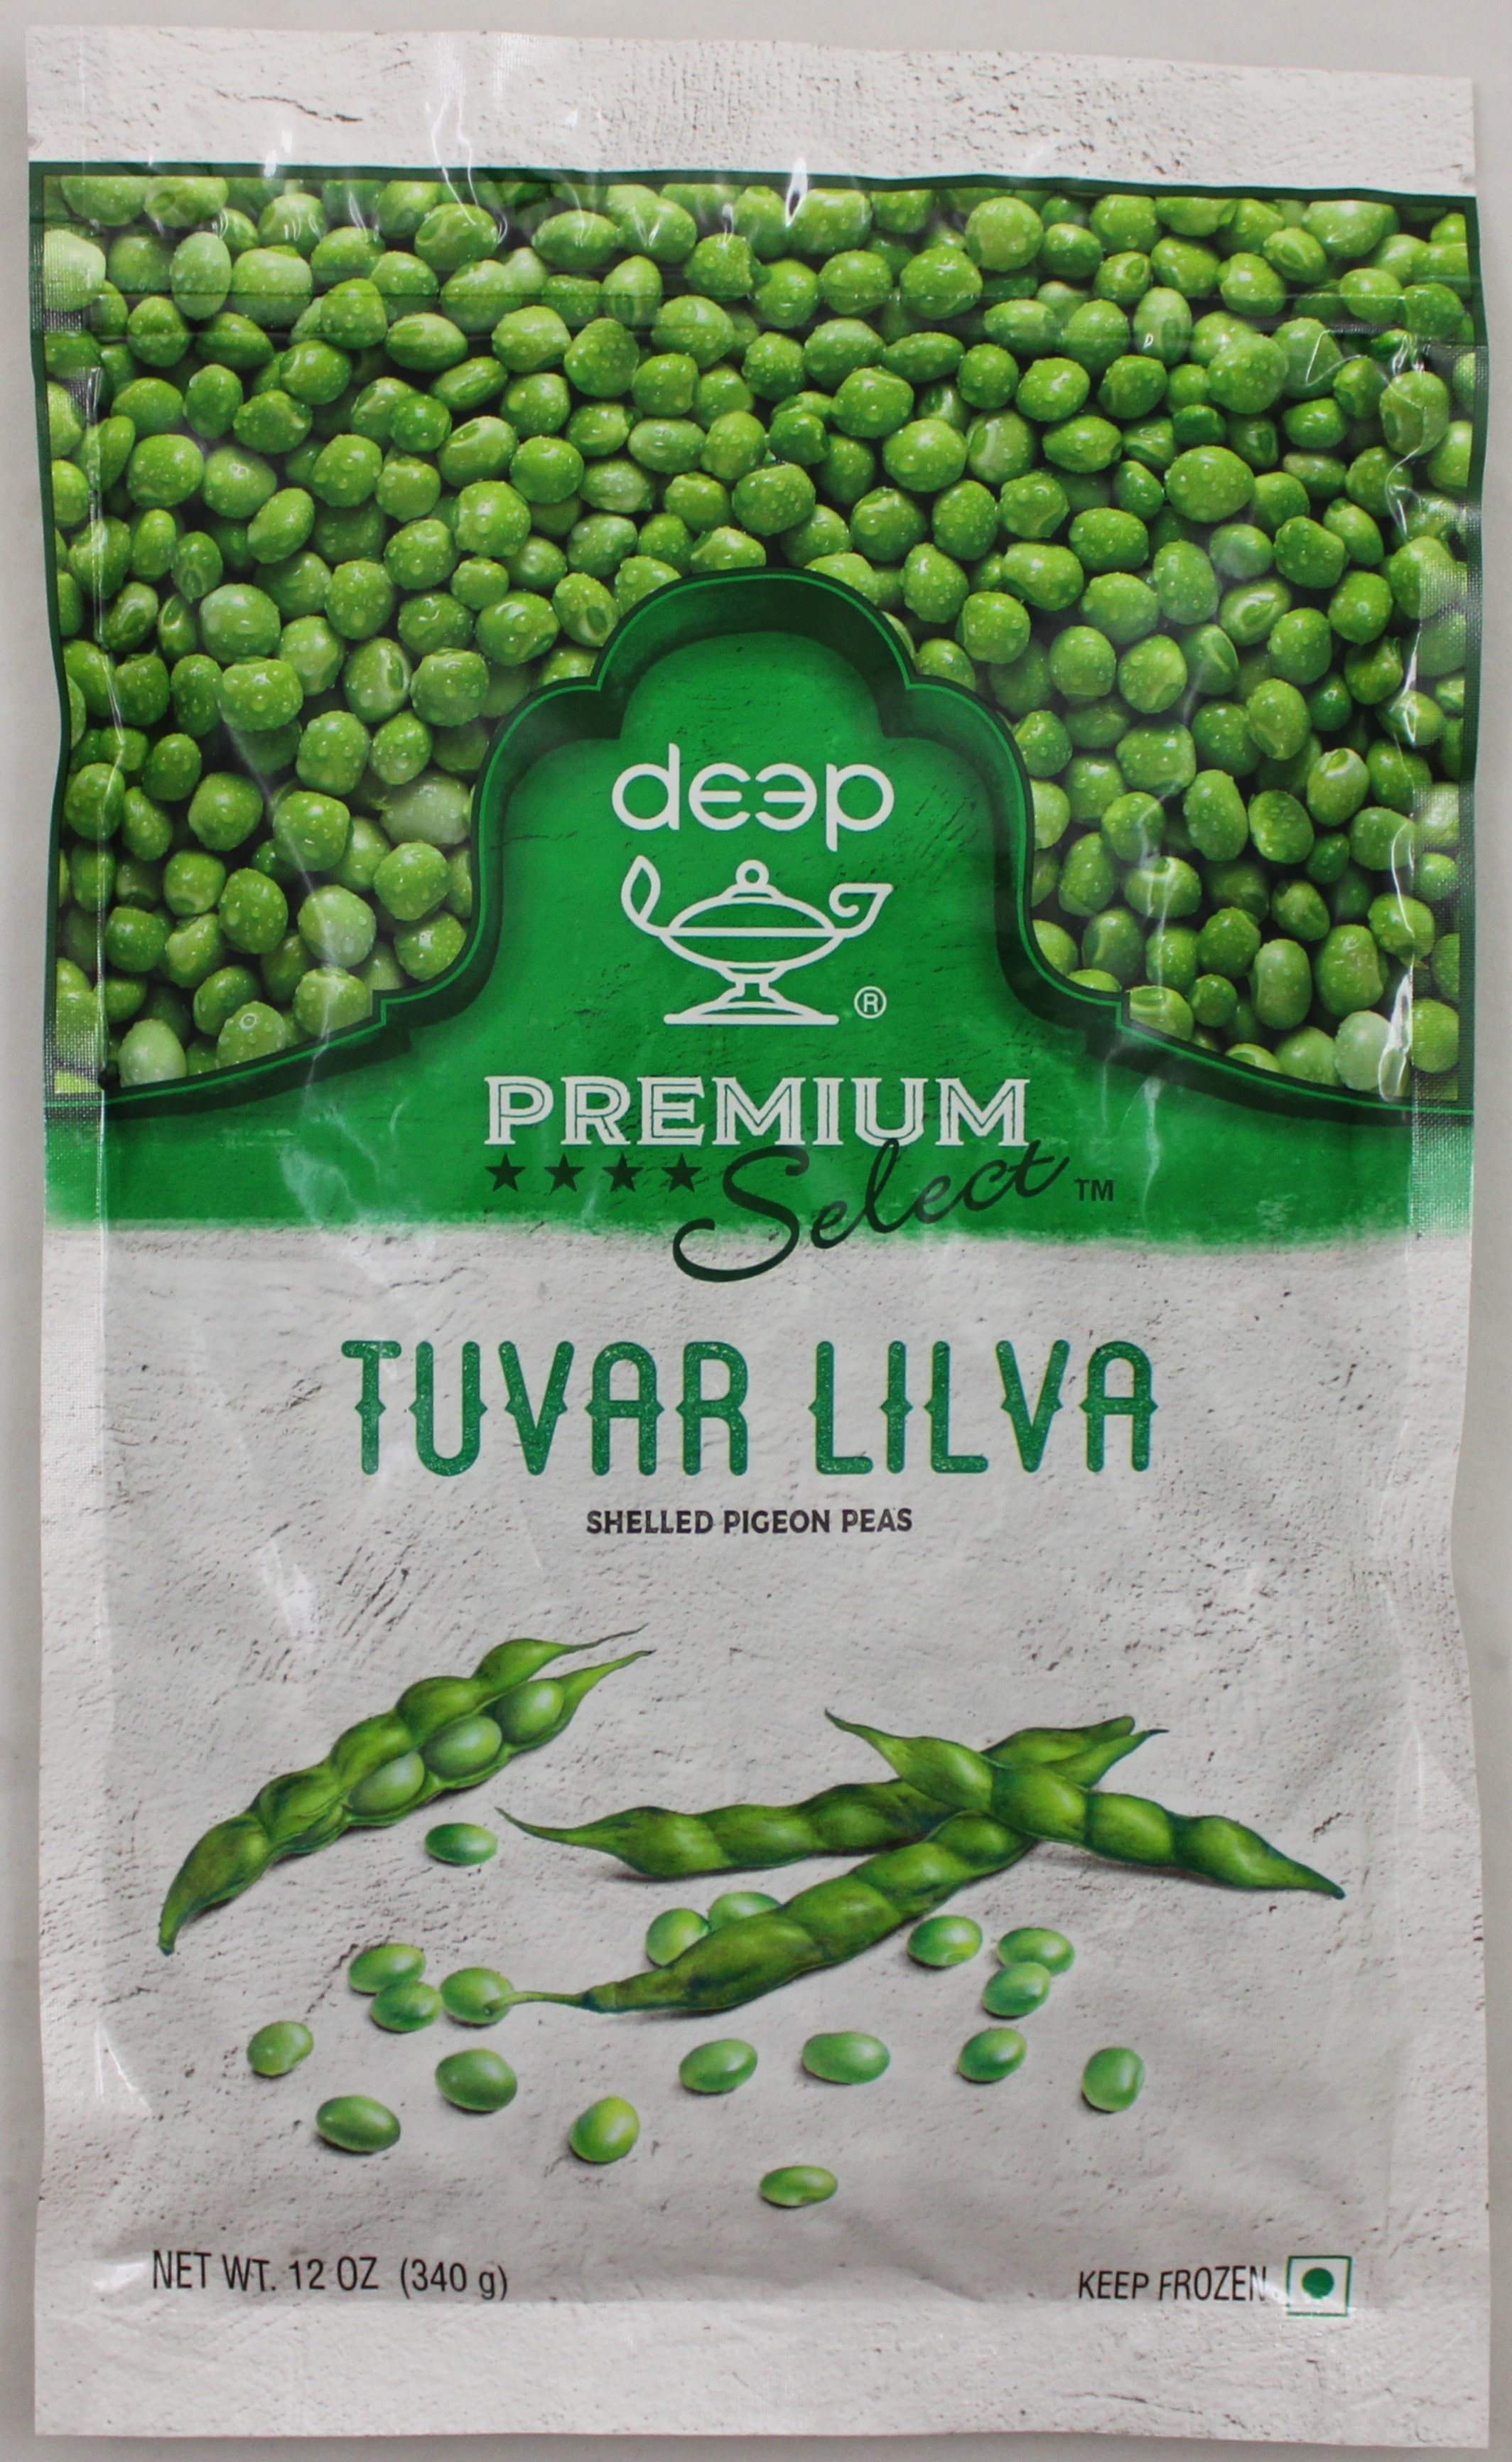 Indian Grocery - Tuvar Lilva 12oz